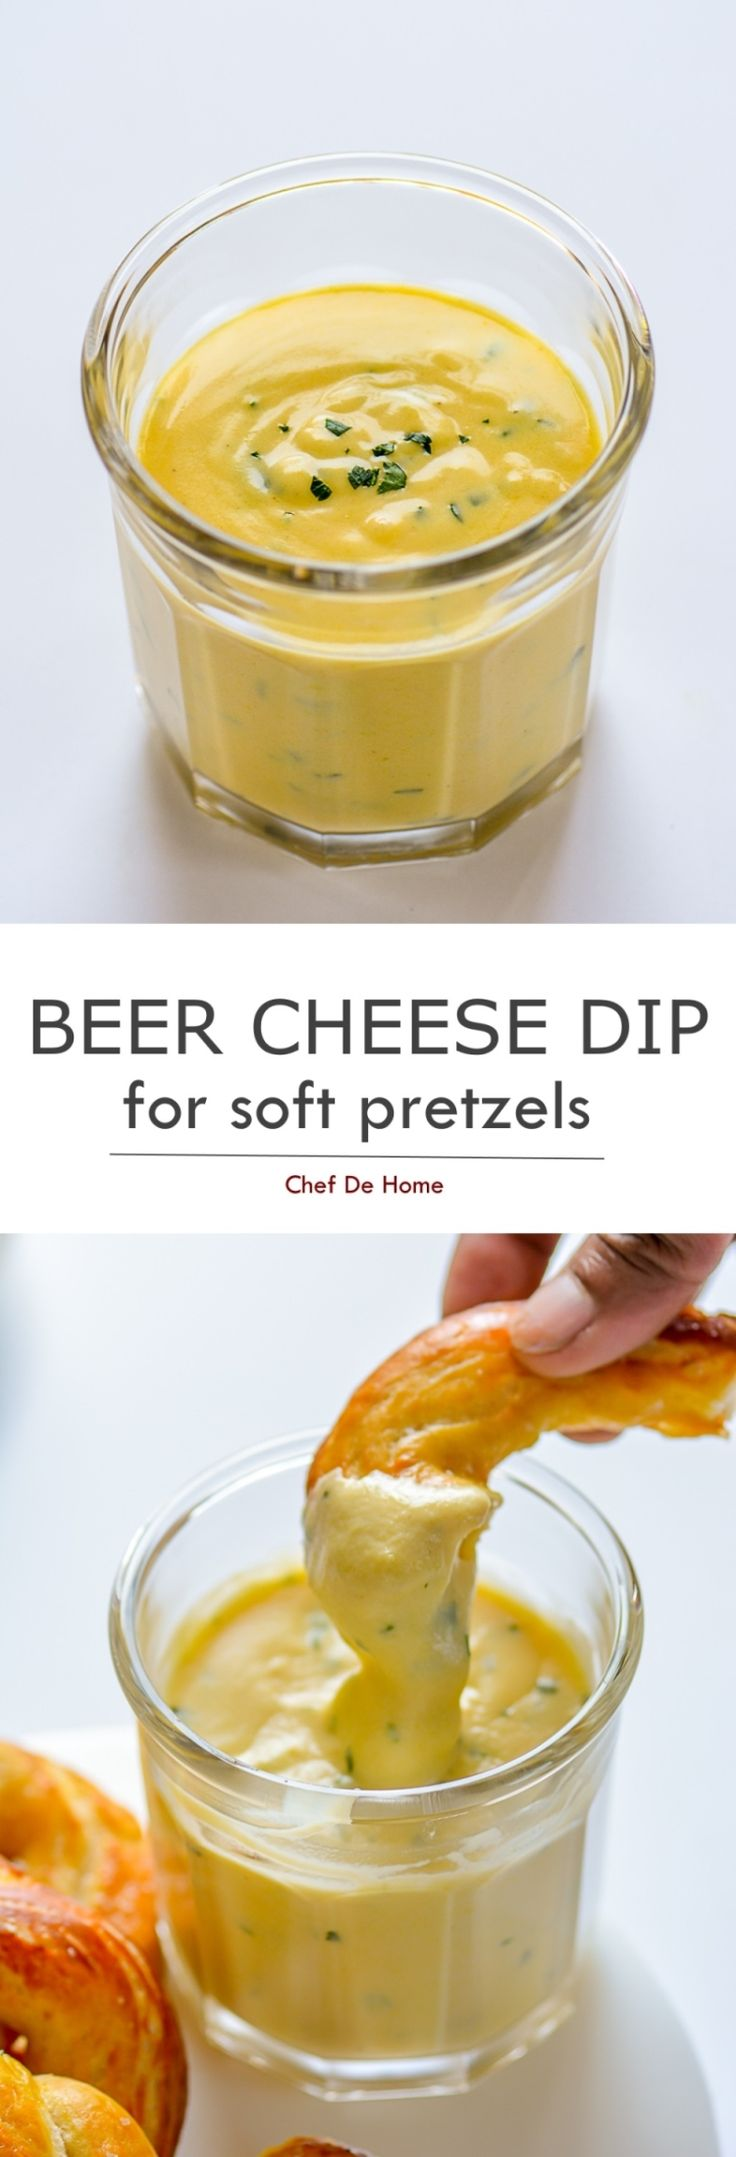 Spicy Beer Cheese Dipping Sauce to serve with soft homemade pretzels | chefdehome.com